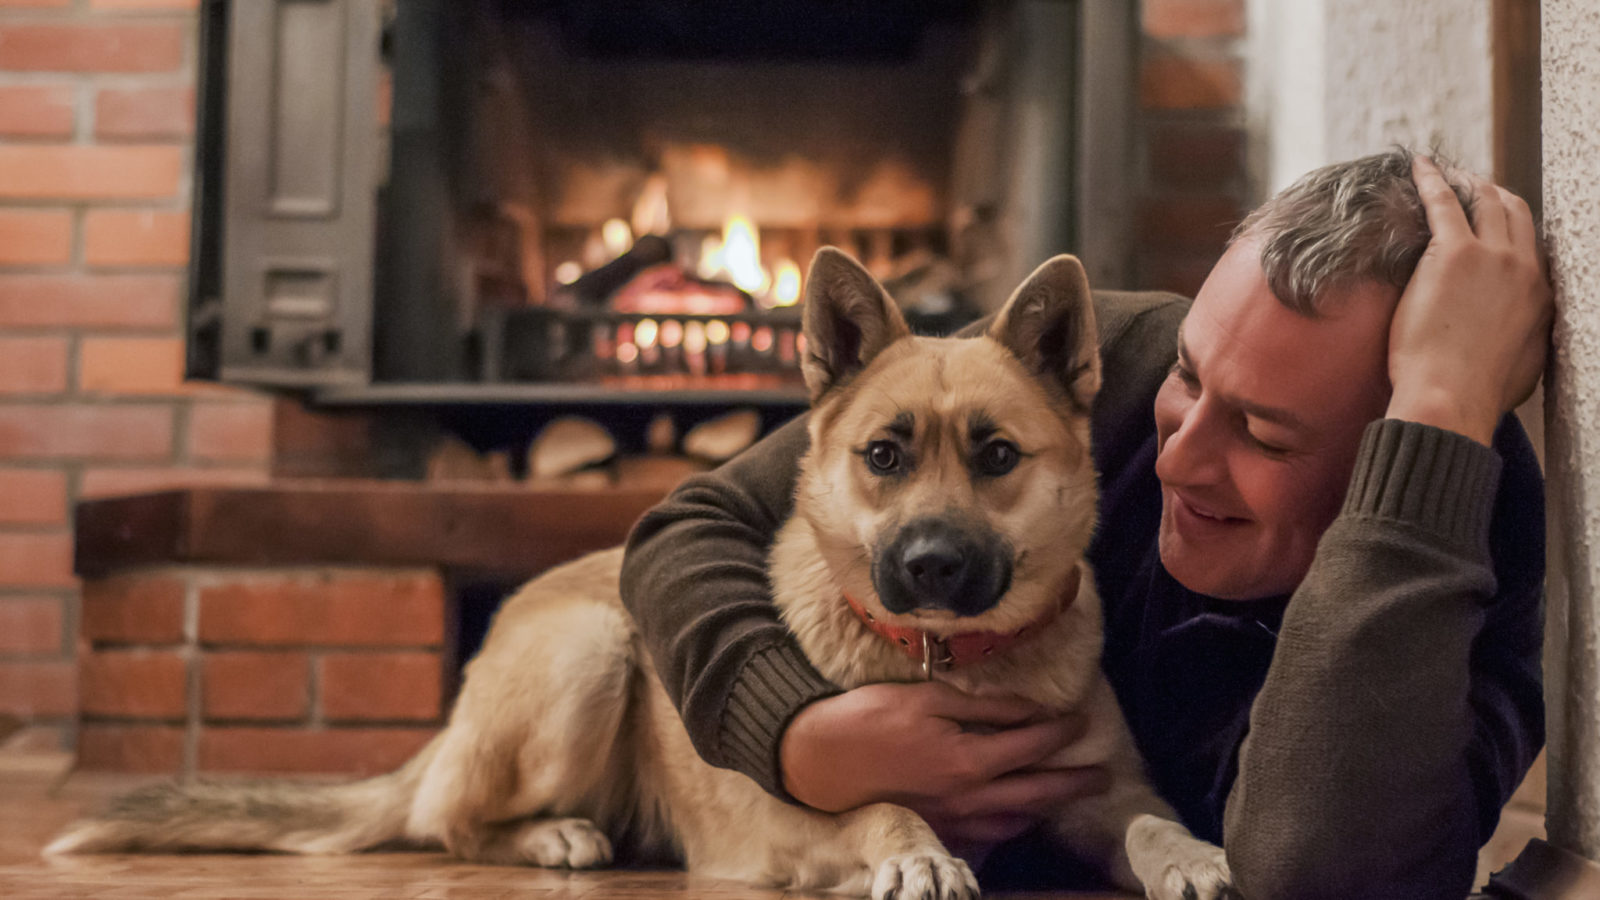 Man with dog and fireplace